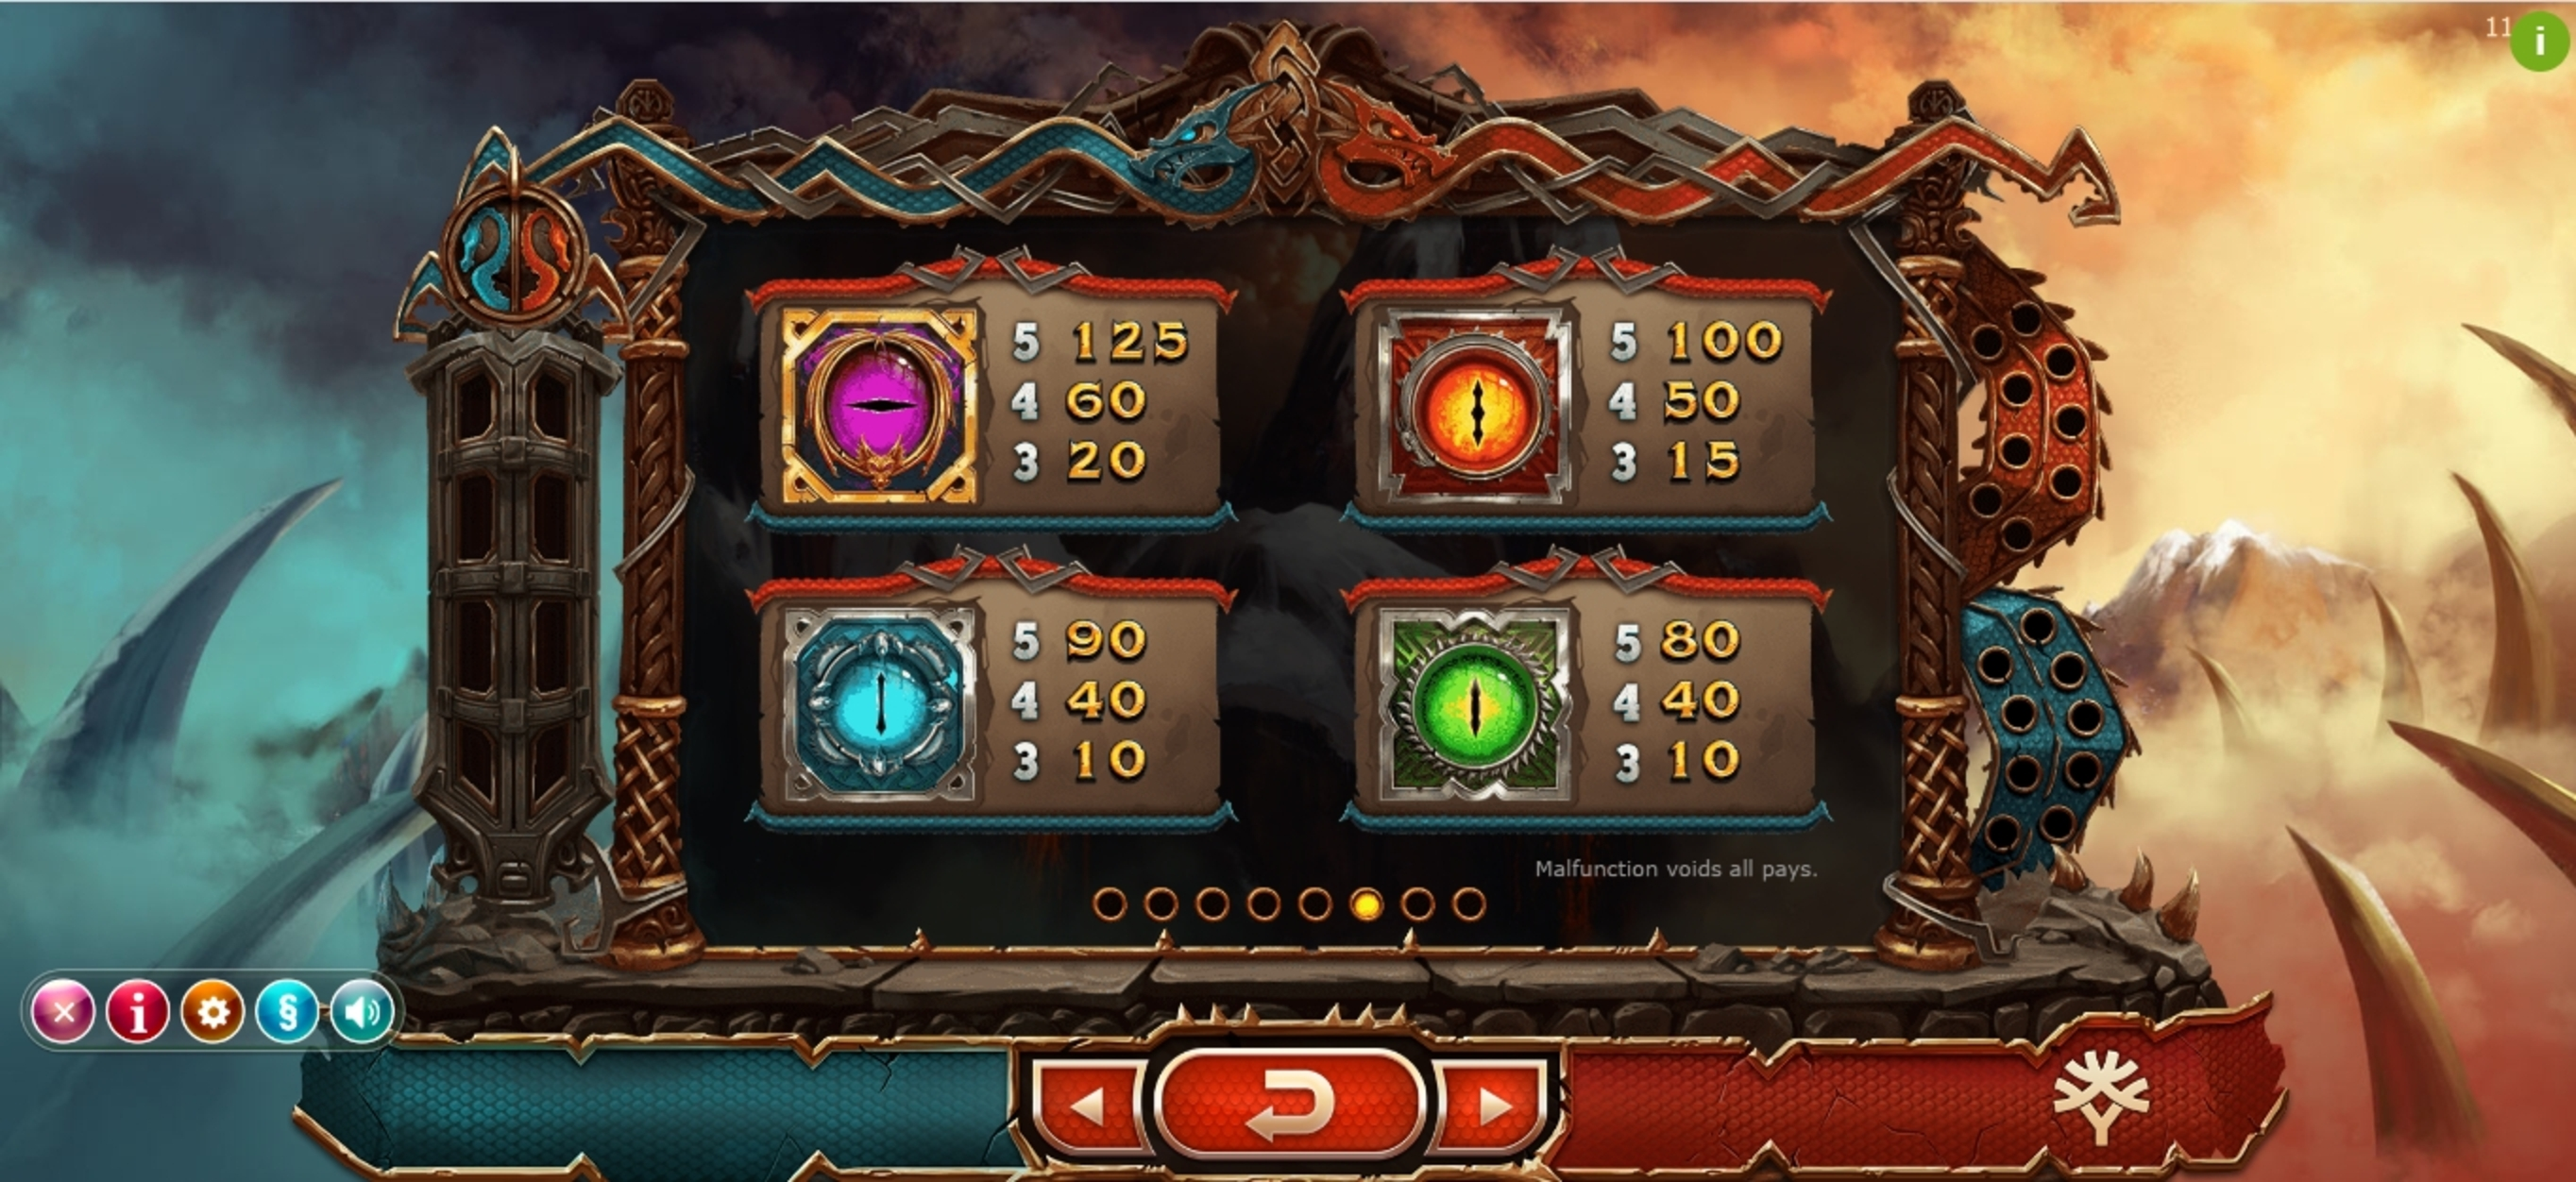 Info of Double Dragons Slot Game by Yggdrasil